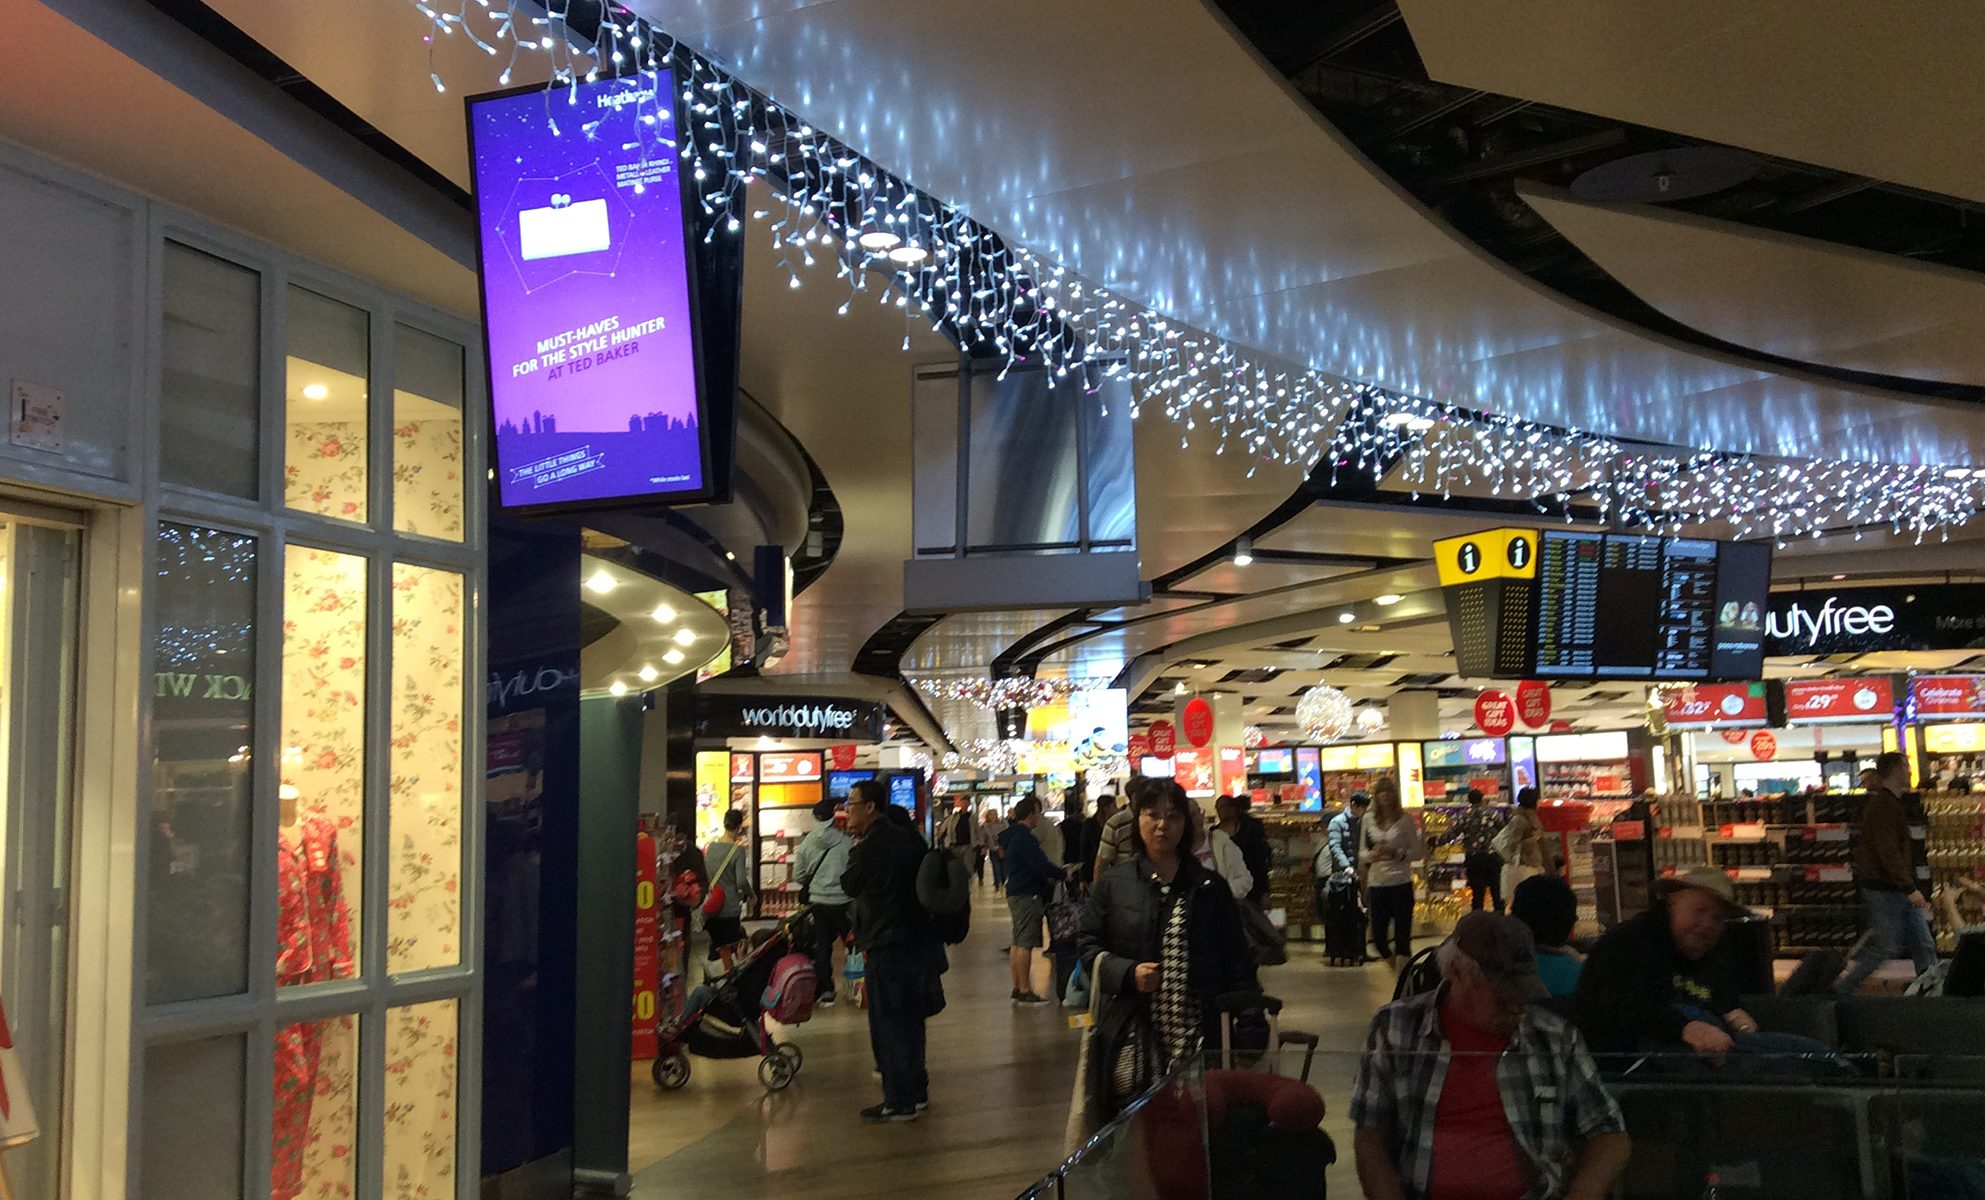 Terminal 3 in London Heathrow